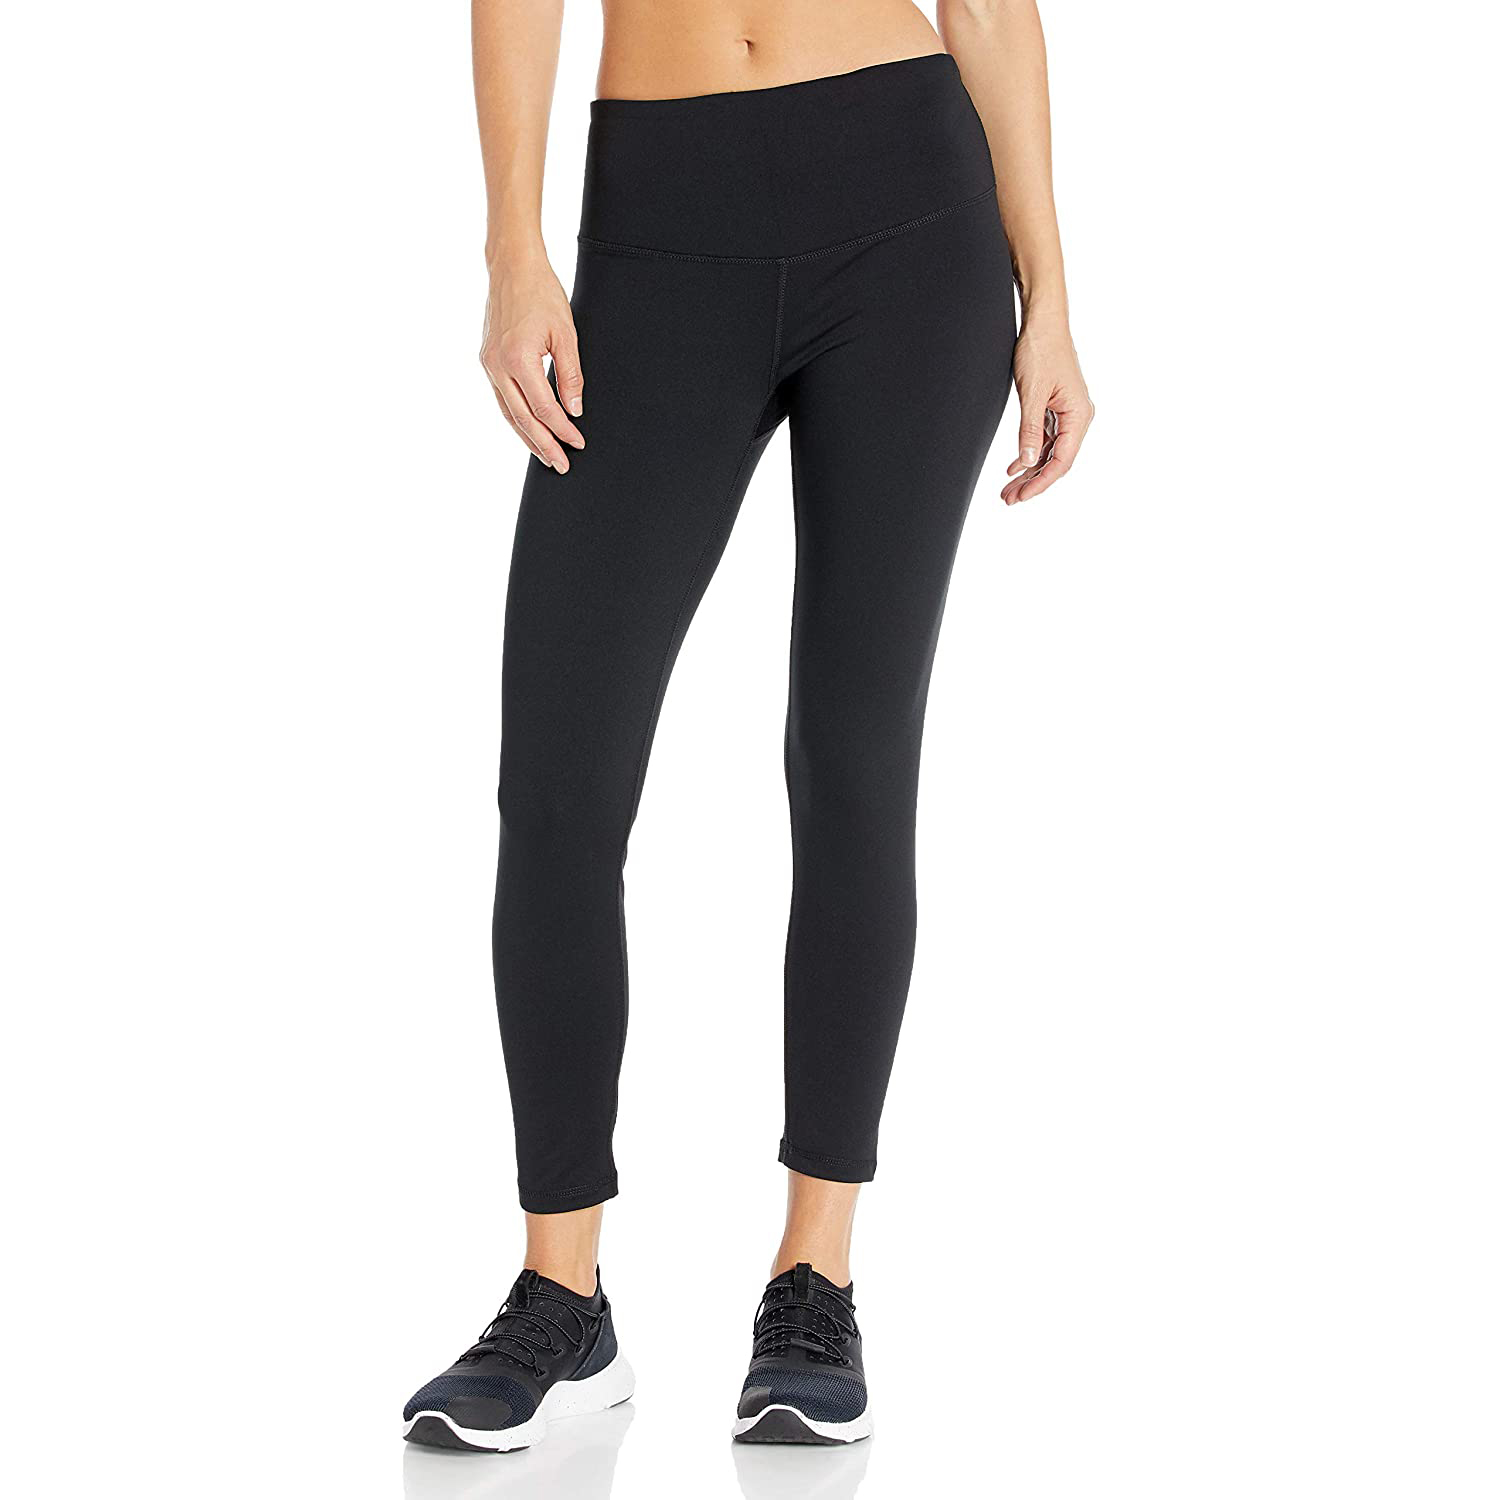 Starter Cropped Performance Workout Legging